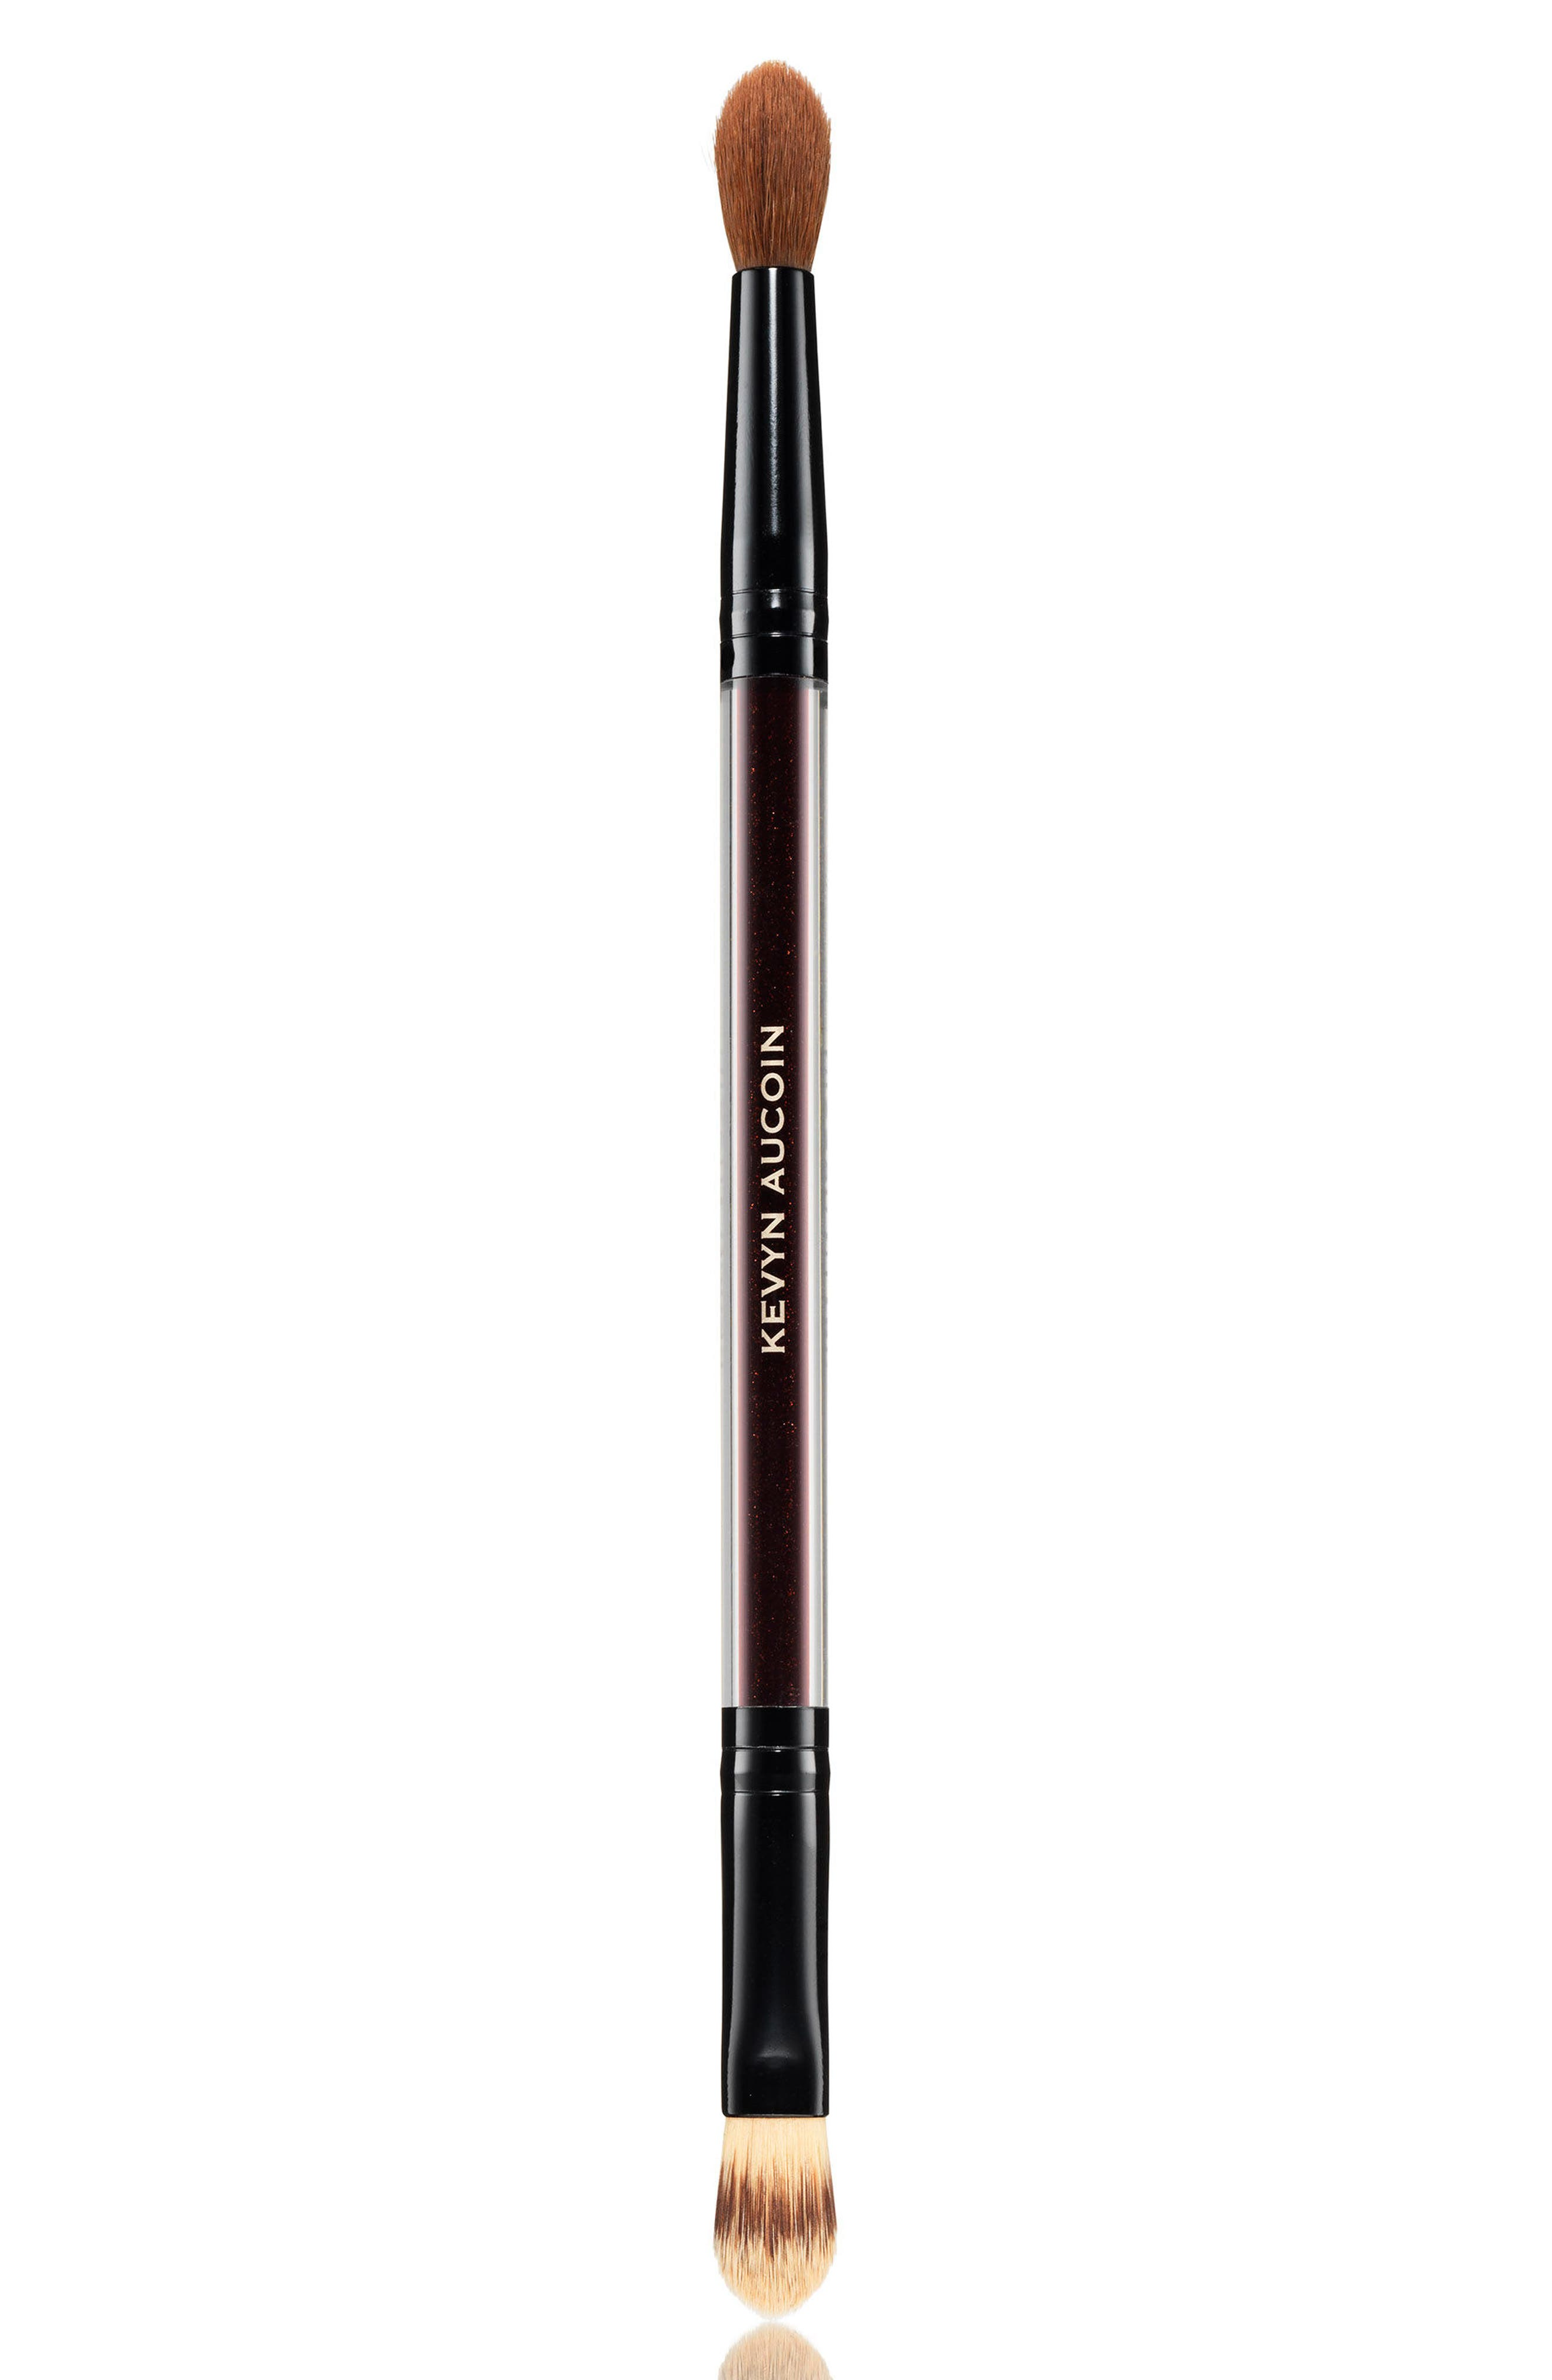 SPACE.NK.apothecary Kevyn Aucoin Beauty The Duet Concealer Brush,                             Main thumbnail 1, color,                             No Color